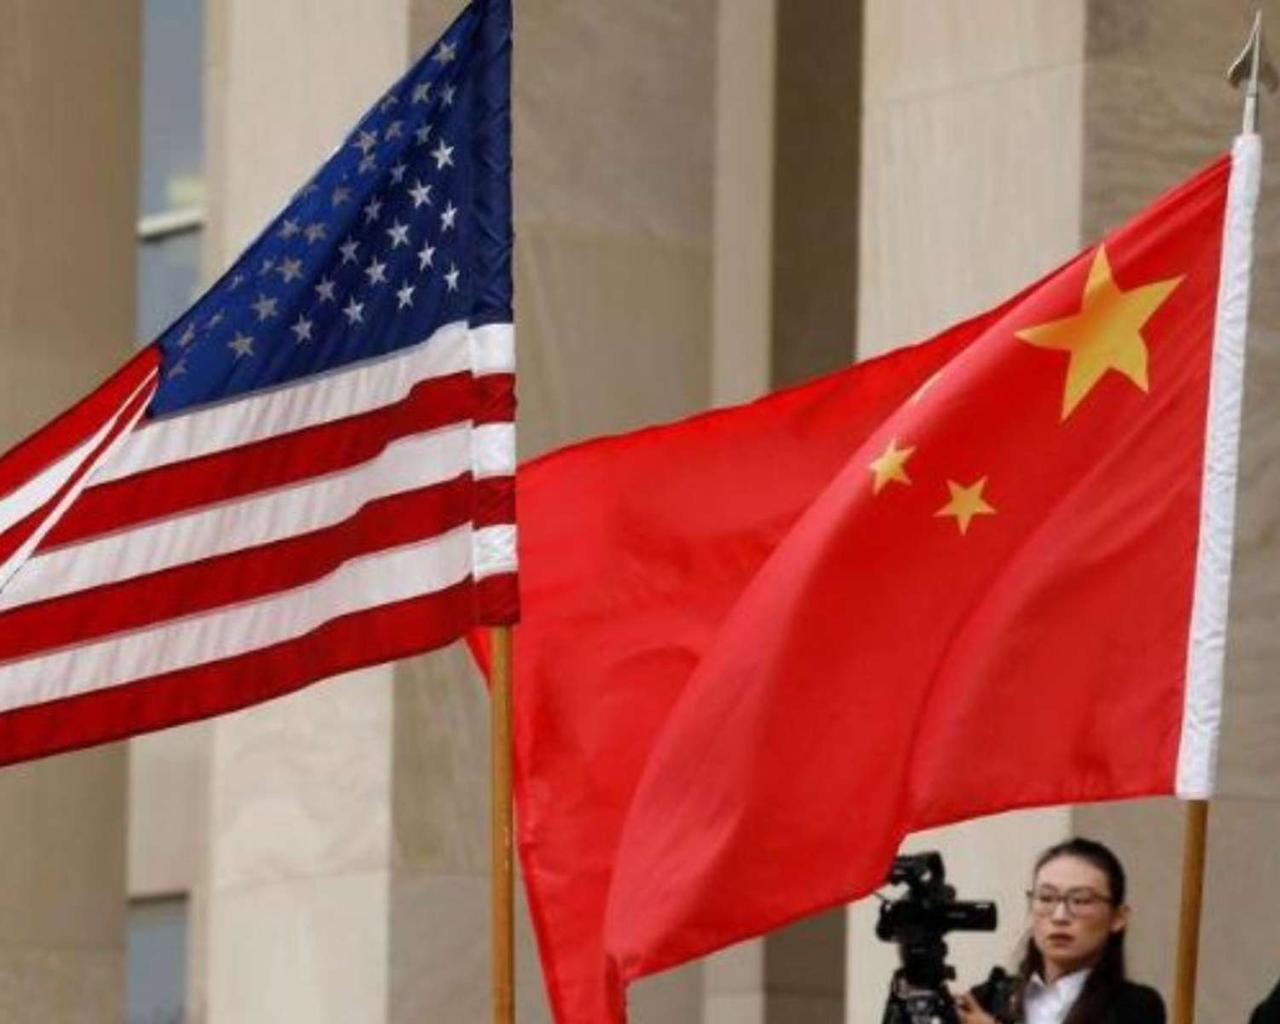 Tough talks between the US and China signal difficult start in bilateral relations